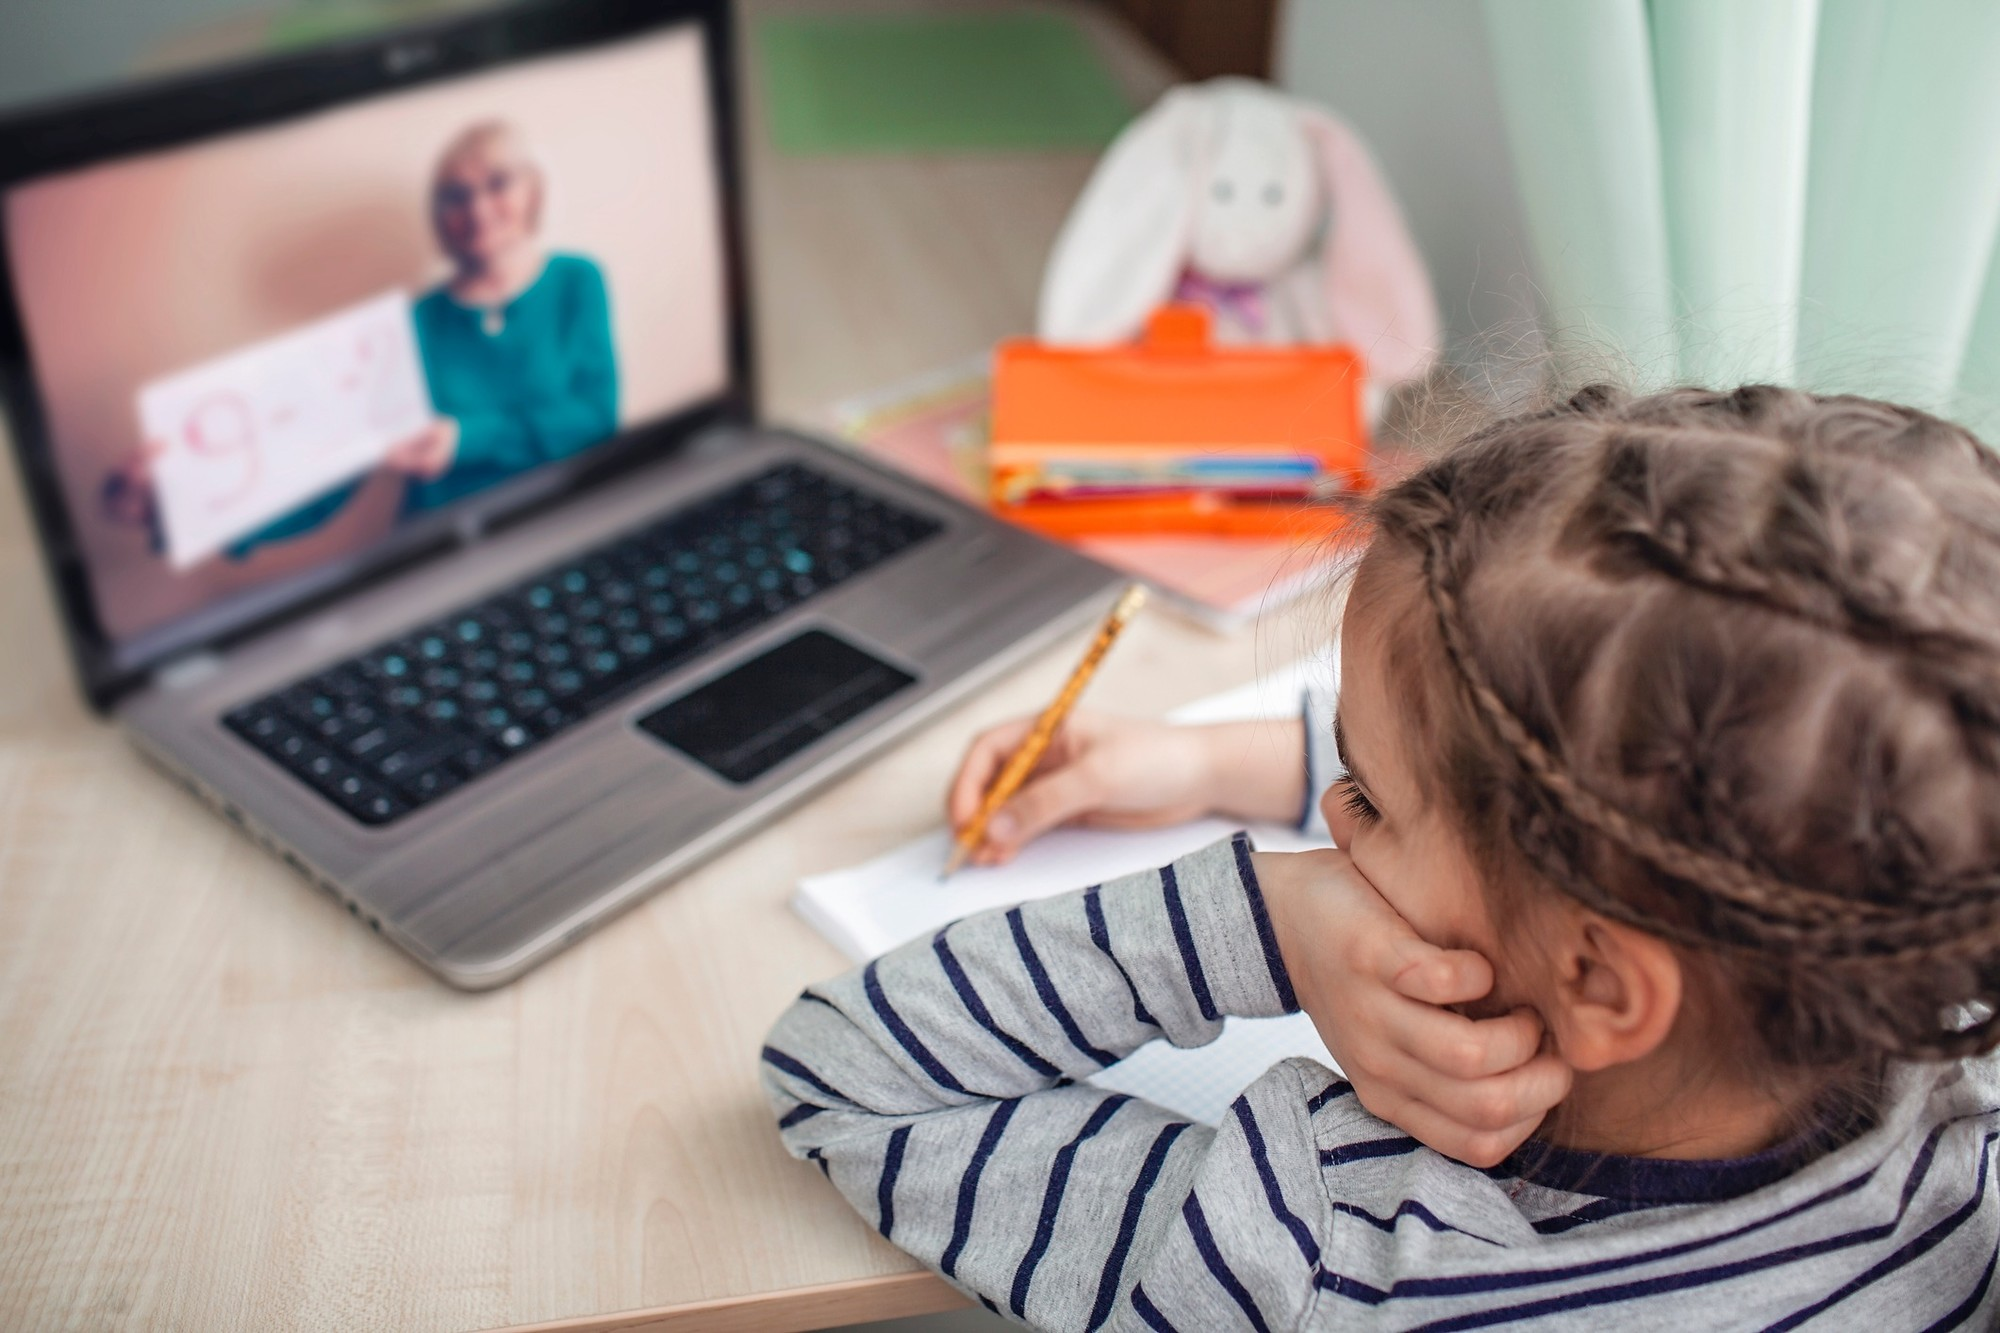 Children Spent Months Adjusting to Learning Online, Only to Abruptly Be Back in the Classroom